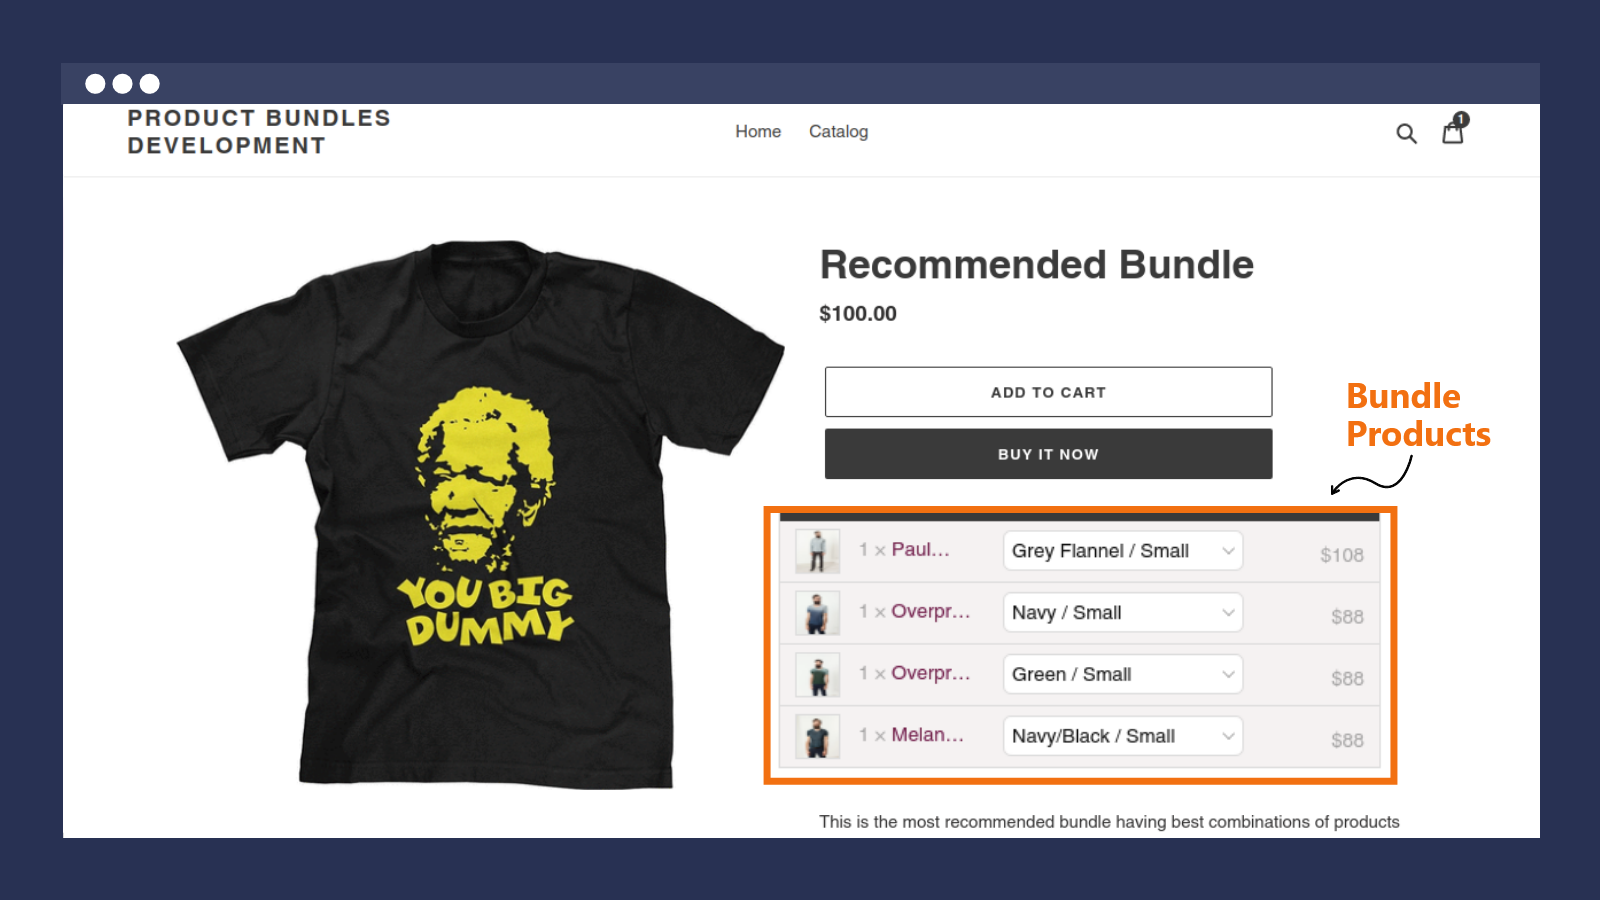 Bundle on the Product page